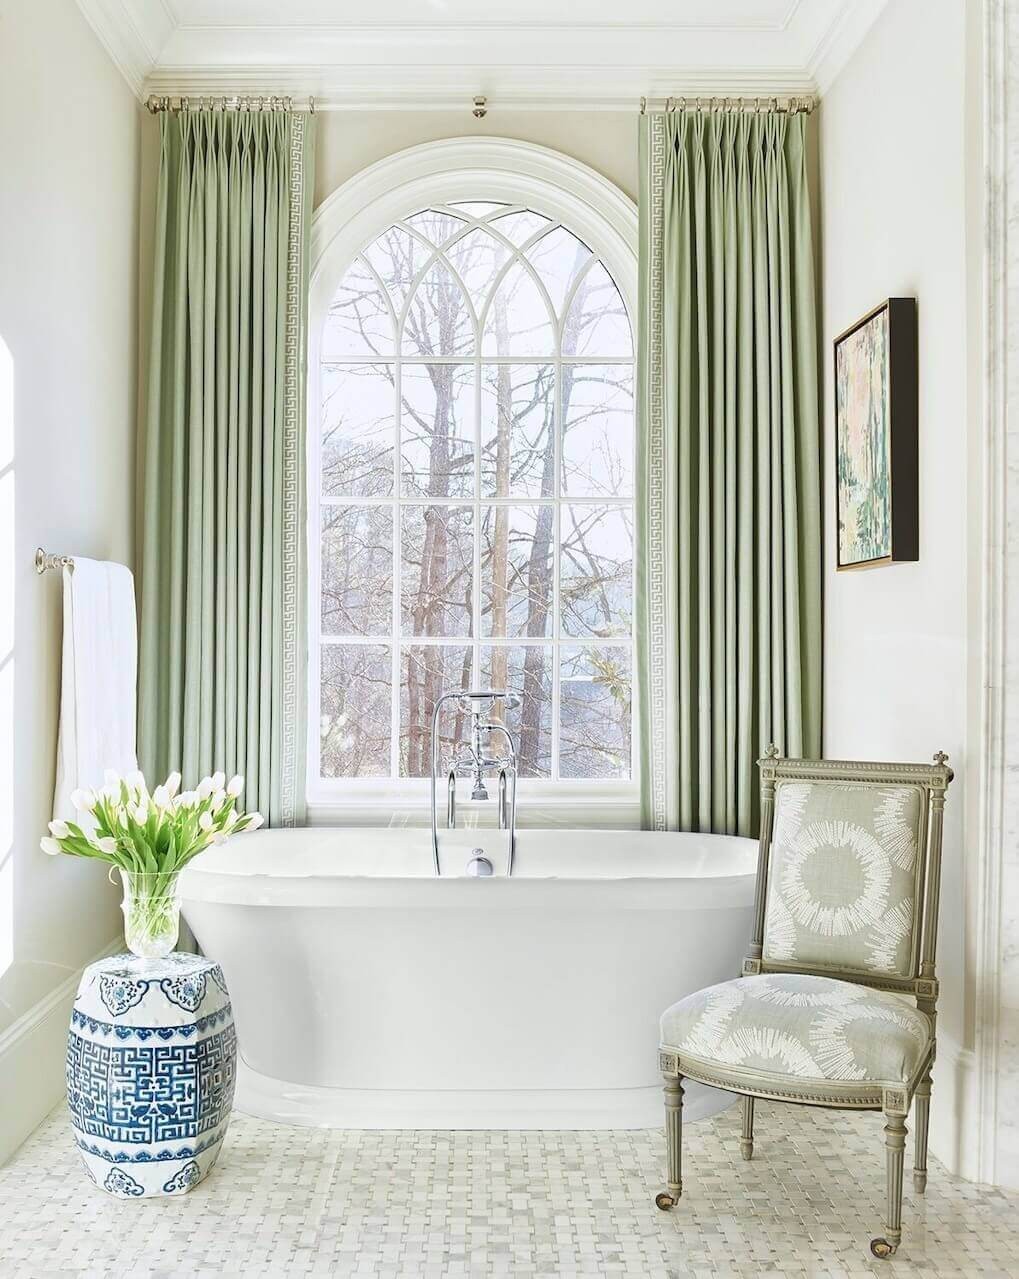 An abstract painting brings in even more color to the tub area.